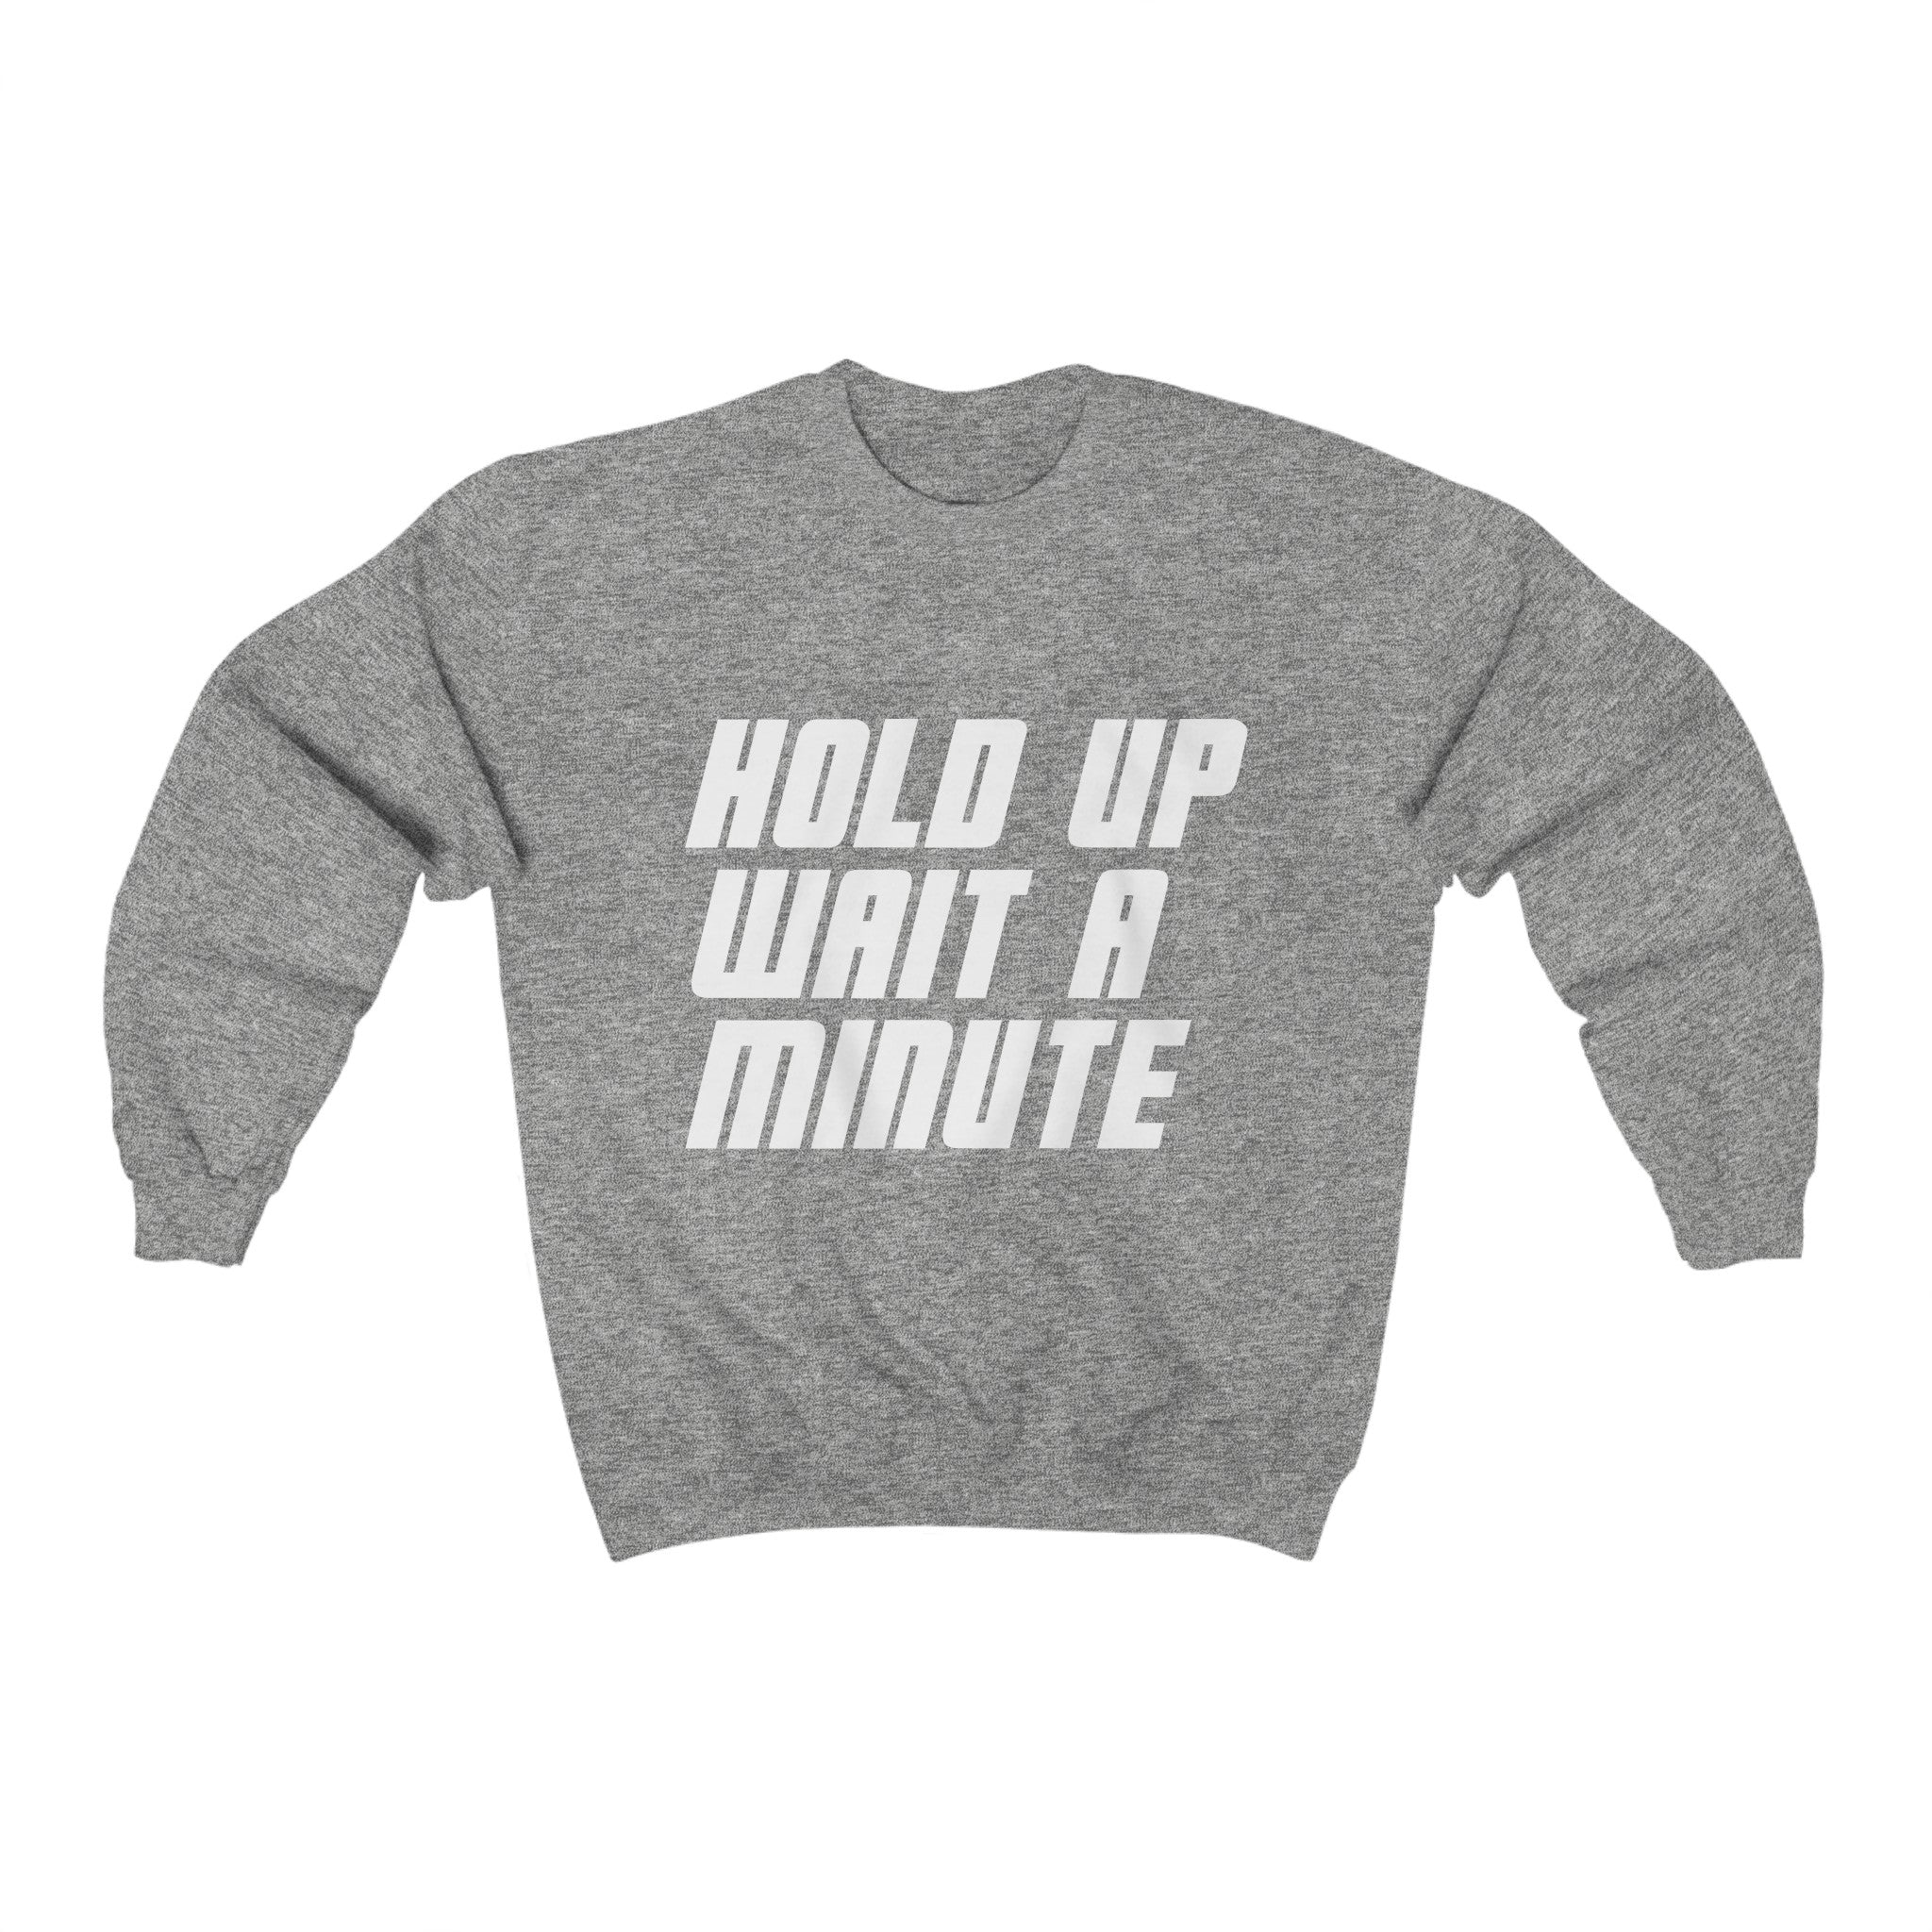 HOLD UP WAIT A MINUTE - LIMITED COLLECTION Grey/White